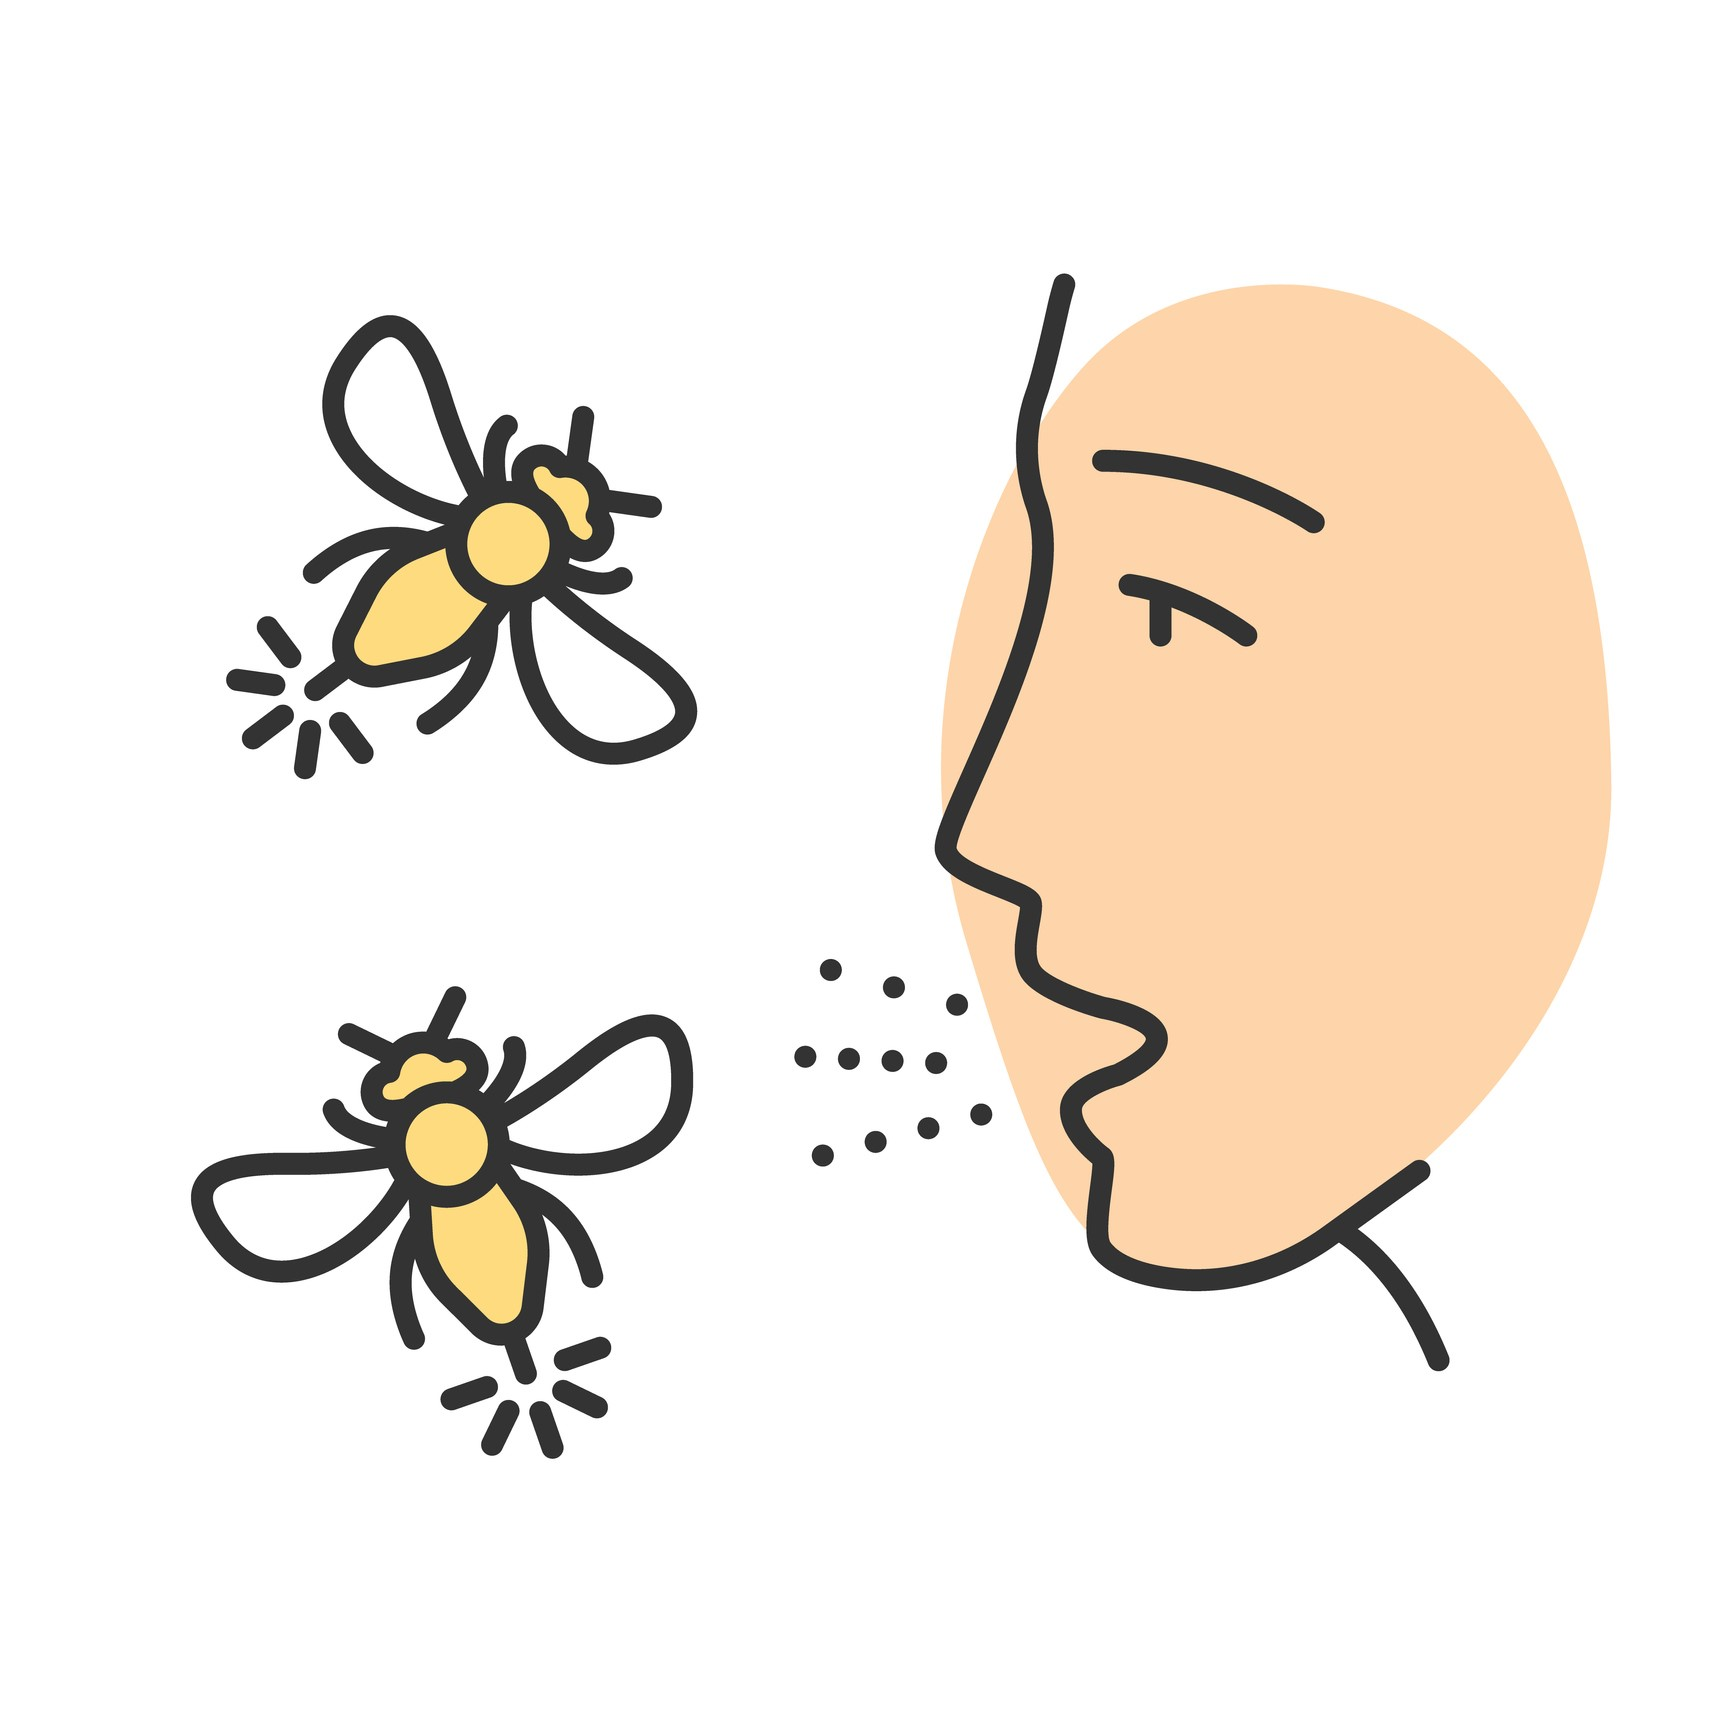 Allergy bees